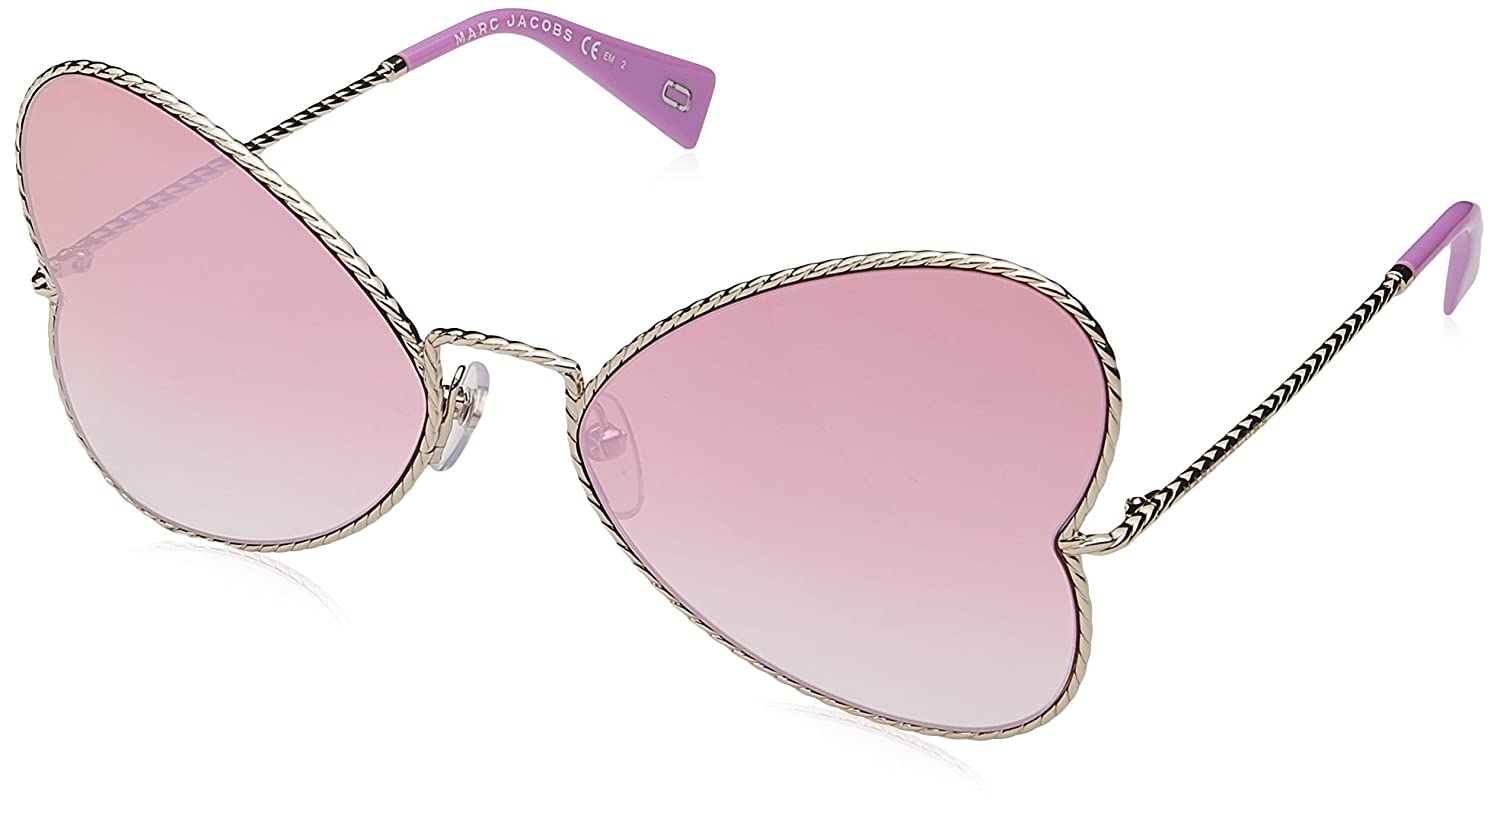 16889a250e65 Amazon.com: Marc Jacobs Women's Marc254s Polarized Cateye Sunglasses LGH  GOLD 60 mm: Clothing